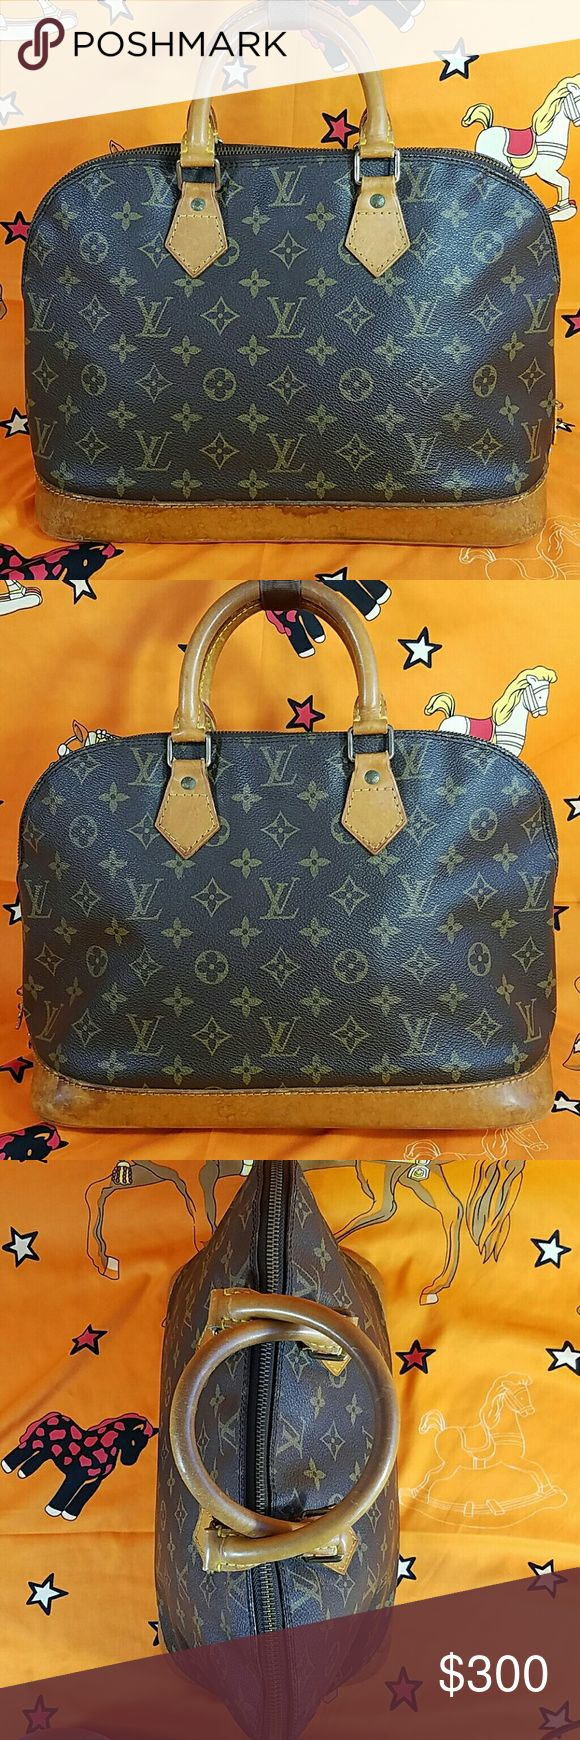 Authentic Louis Vuitton Monogram Emma PM Satchel The canvas is in good condition. The leather trims & handles showed wearing. Inside is nice and clean. Date code VI0943. Dimension 9.5, 14 & 7. It made in France. No trade please. Louis Vuitton Bags Satchels